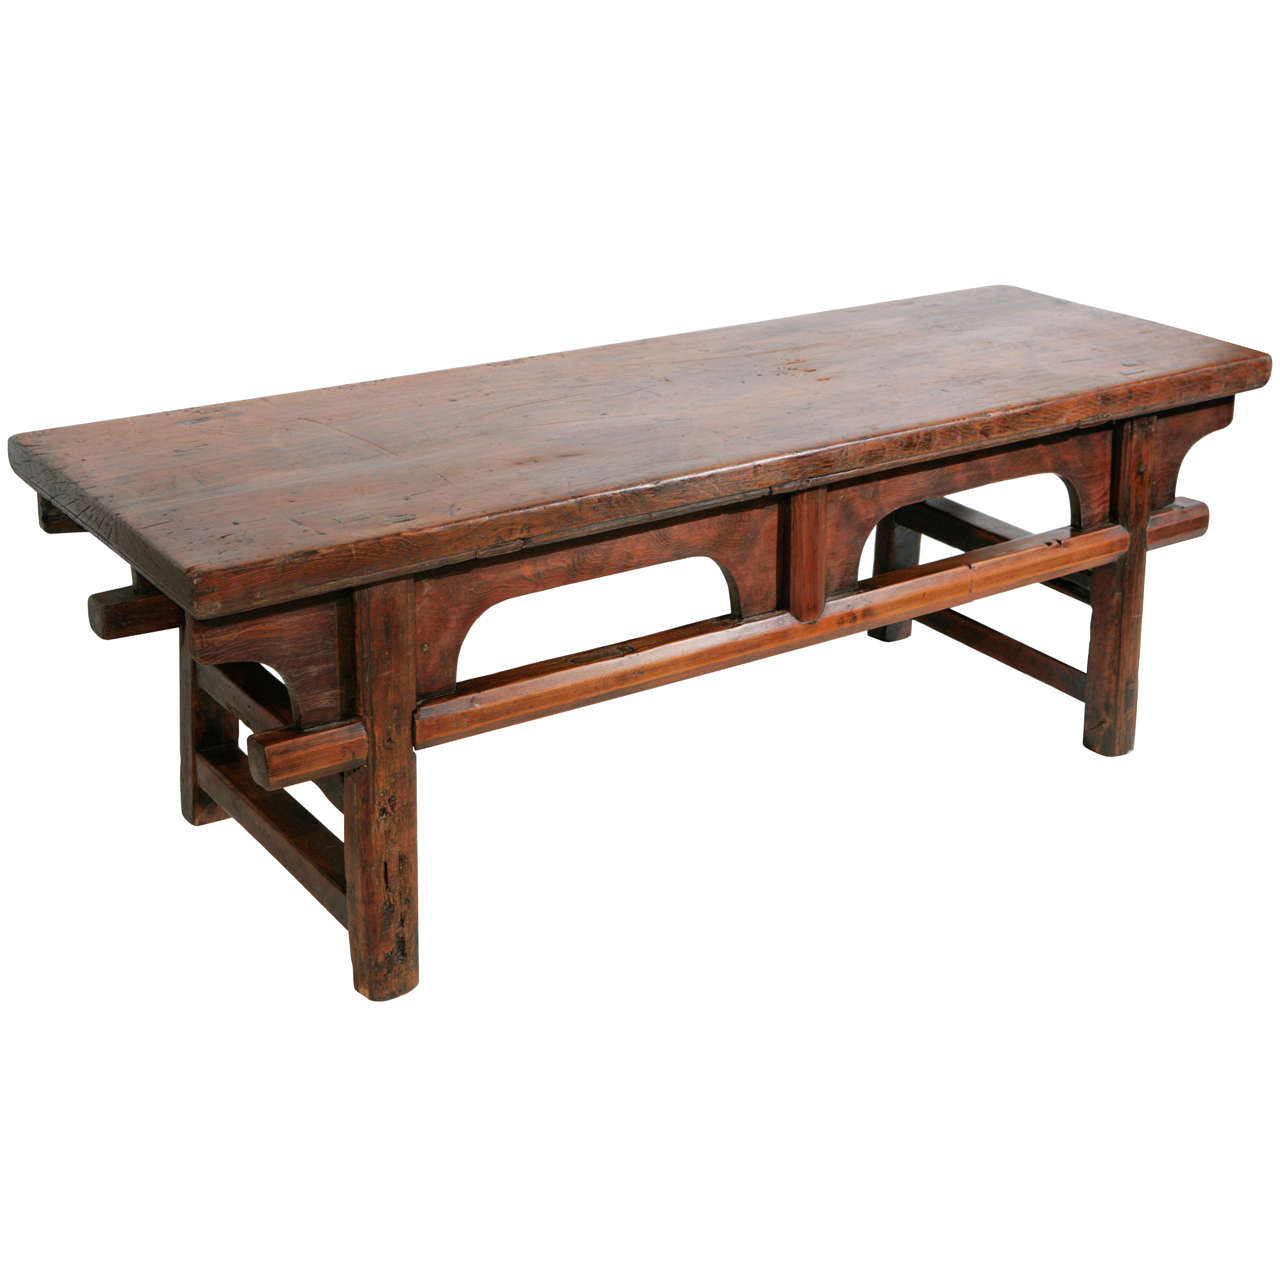 Chinese Pagoda Style Hardwood Table Or Bench At 1stdibs